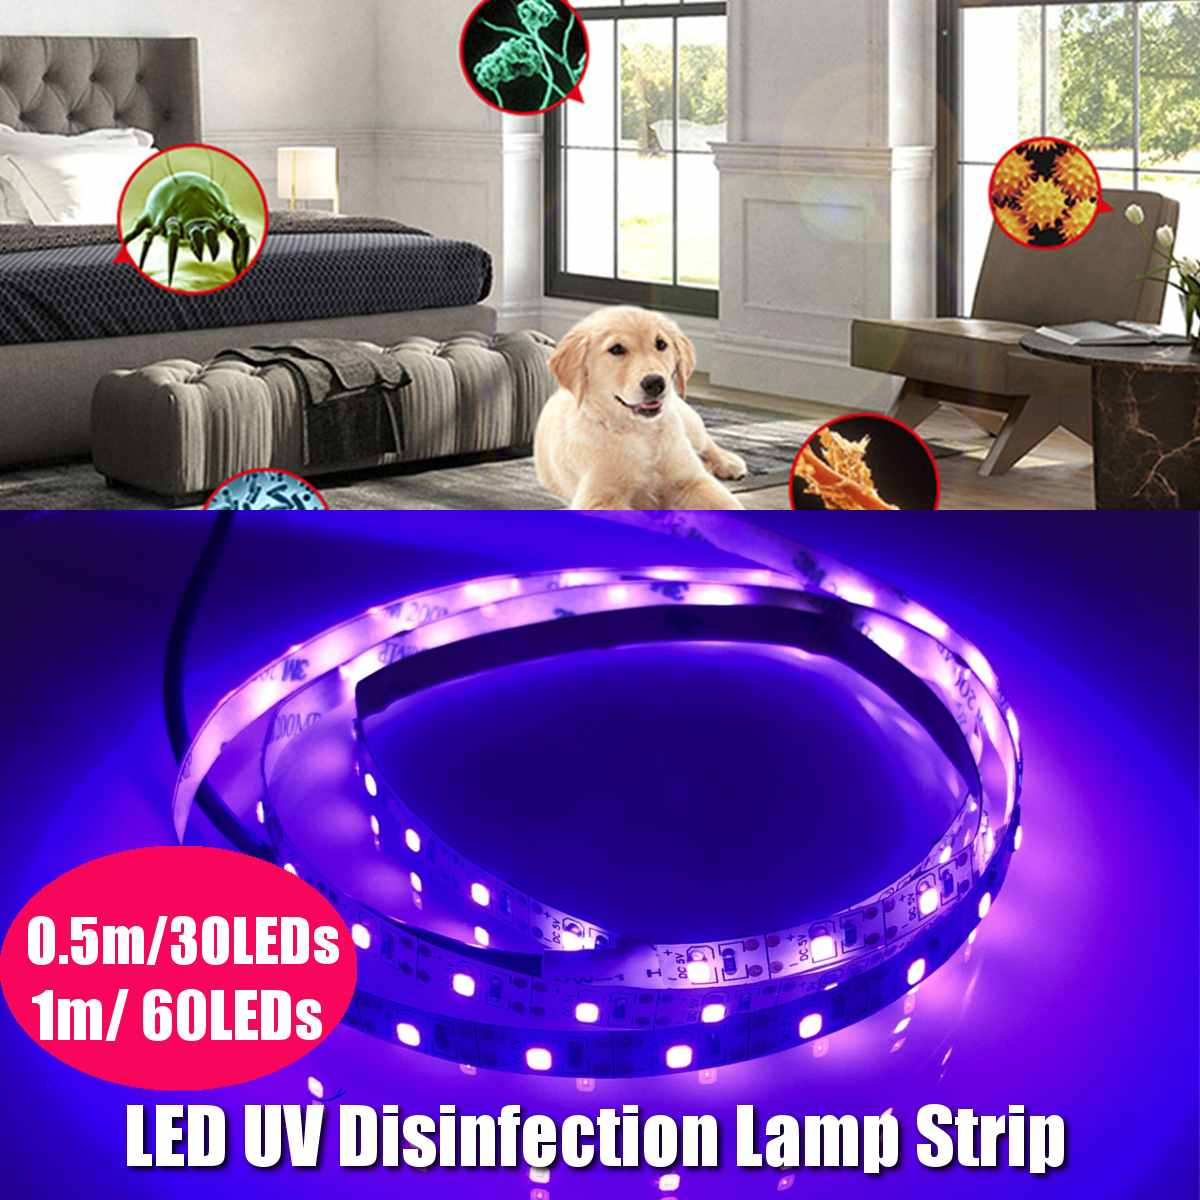 Ultraviolet Disinfection Lamp Germicidal Light Strip Household Germicidal USB Charging LED Sterilizer UVC Sterilizer Light